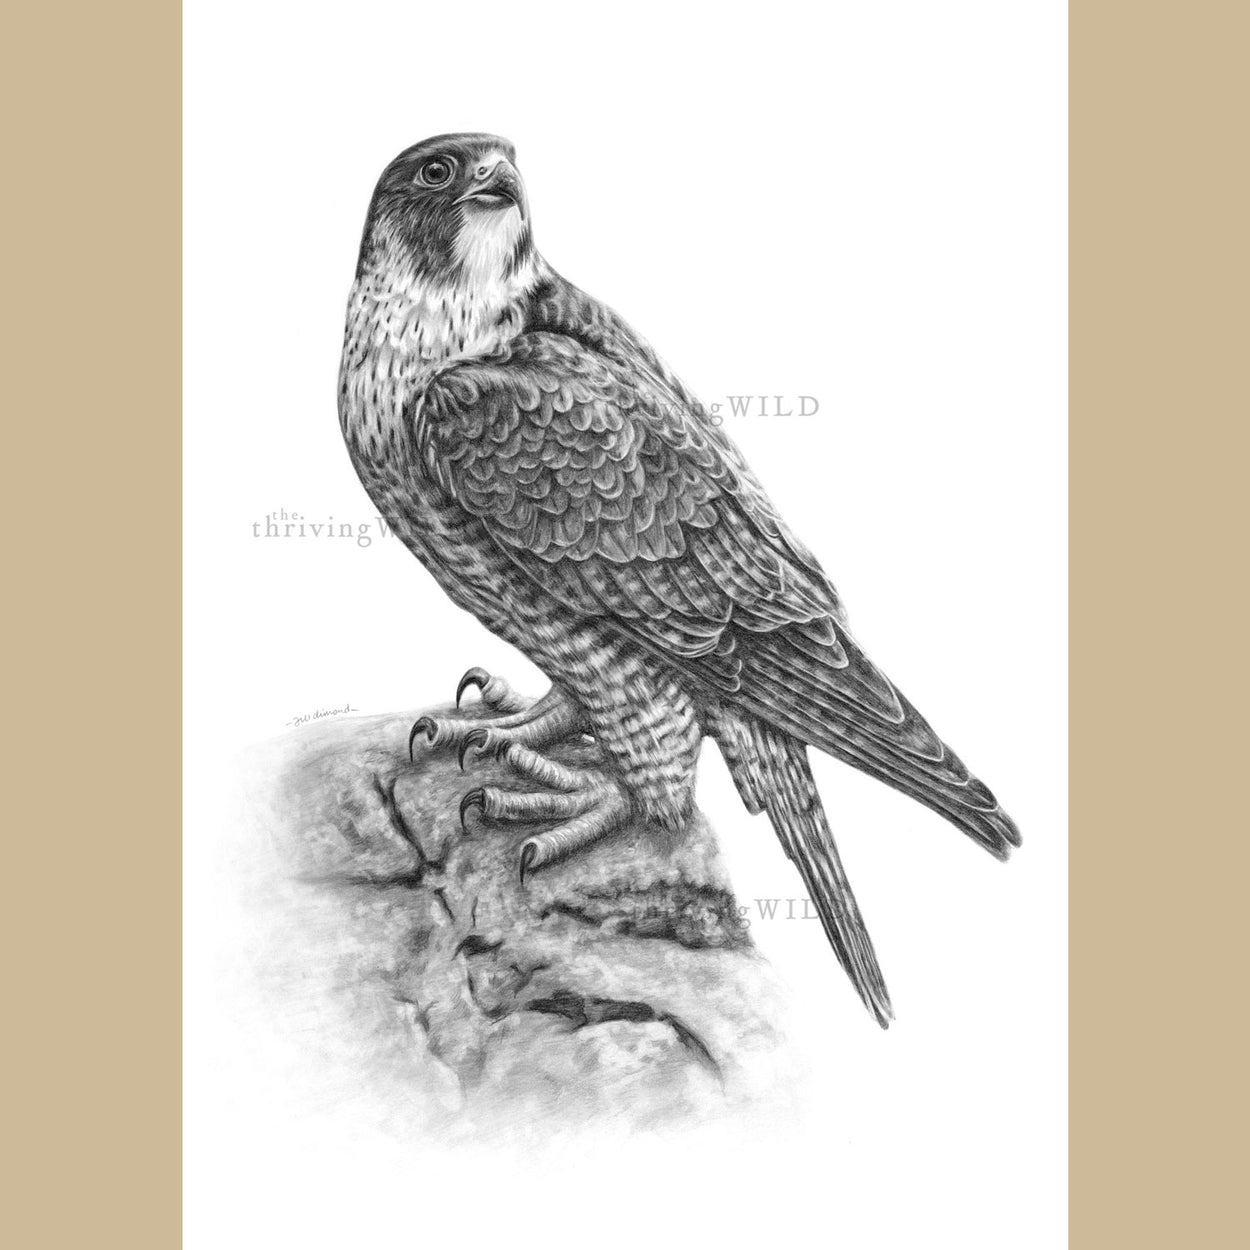 Peregrine Falcon Pencil Drawing - The Thriving Wild - Jill Dimond